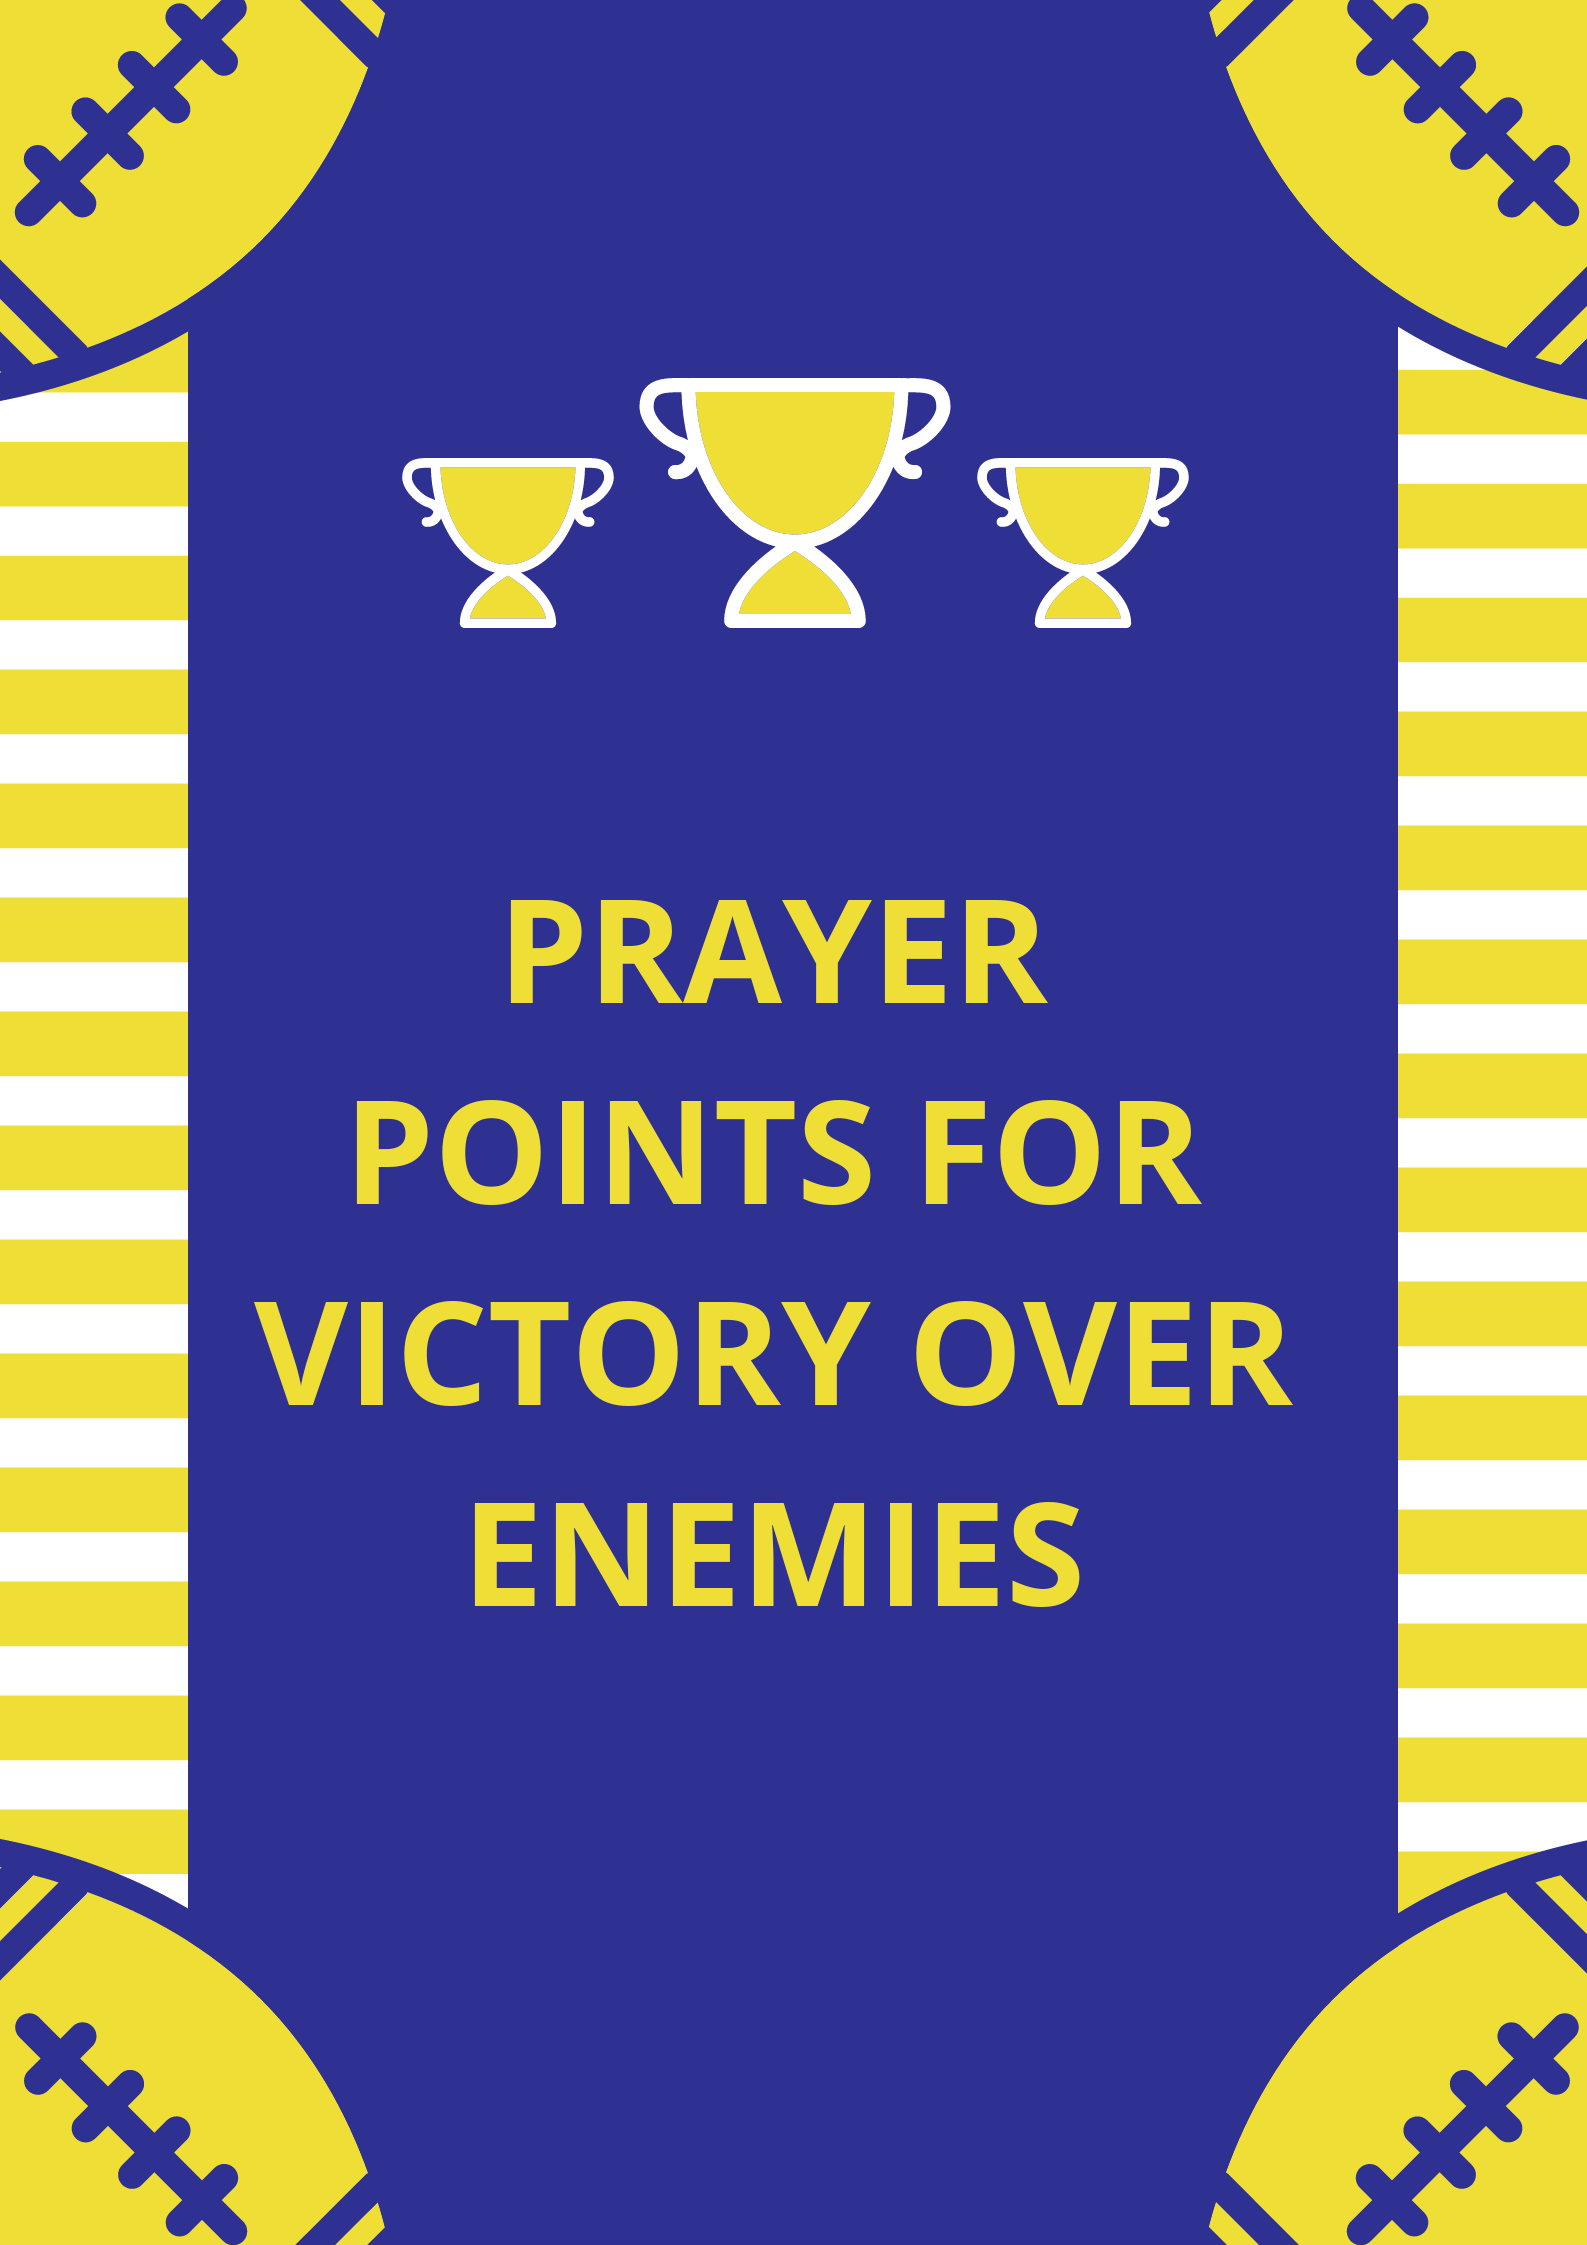 100 Prayer Points For Victory Over Enemies | PRAYER POINTS